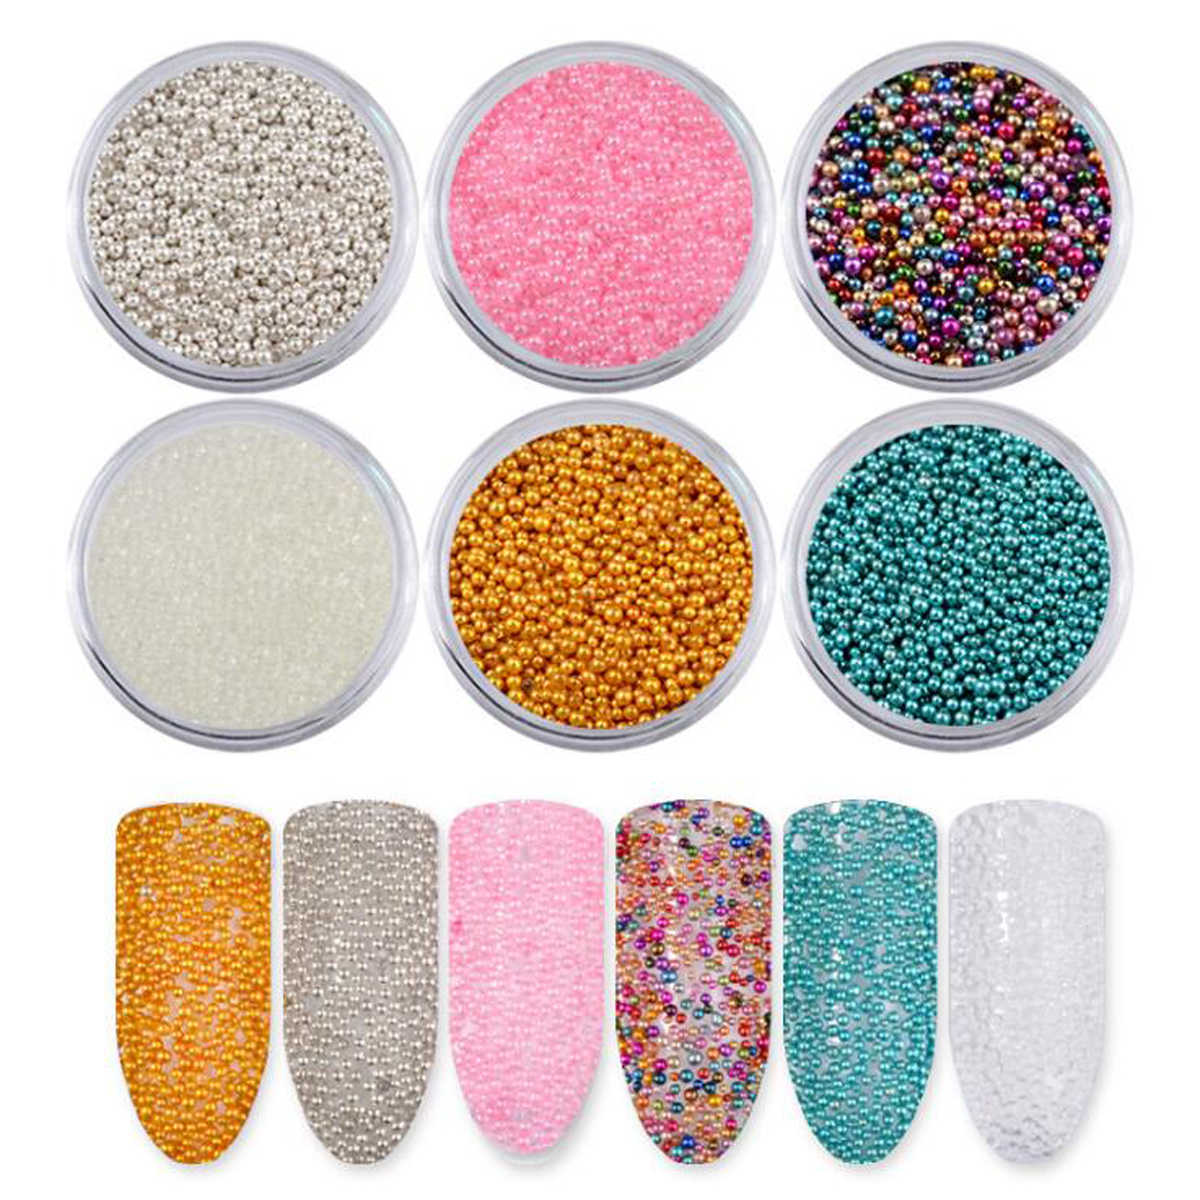 Nail Rhinestone & Ornaments Manicure Caviar Colorful Beads Phototherapy Mixed Color Beads DIY Nail Art Decorations 6box/set